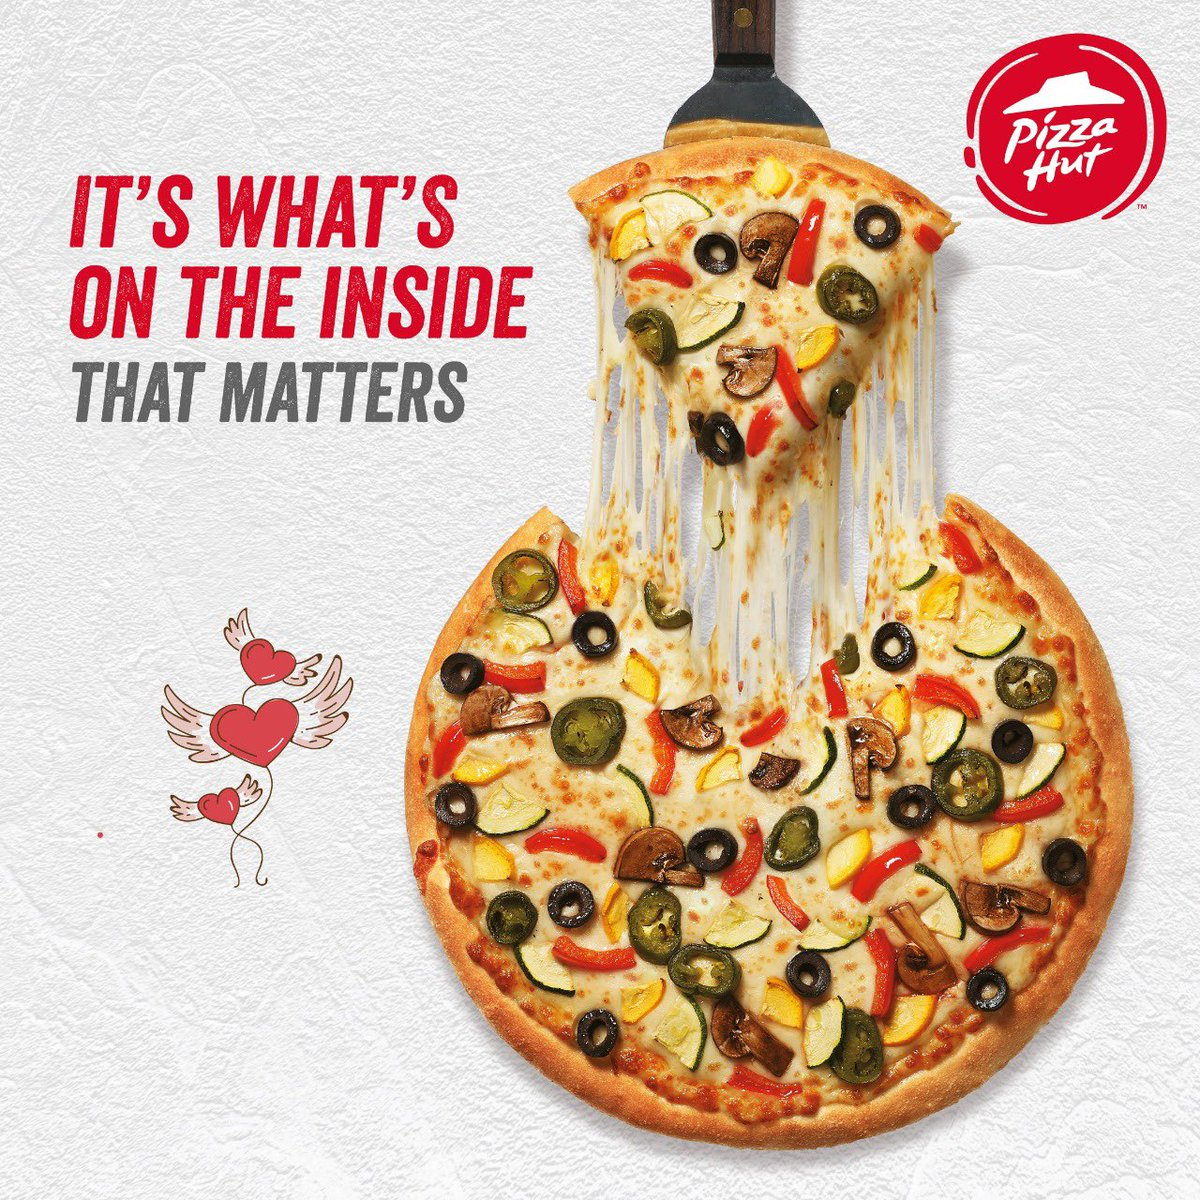 Tasty outside, Magic inside. Have a PizzaPerfectValentine with Pizza Hut. PizzaHutJavenge https t.co 0XOJkusWmB